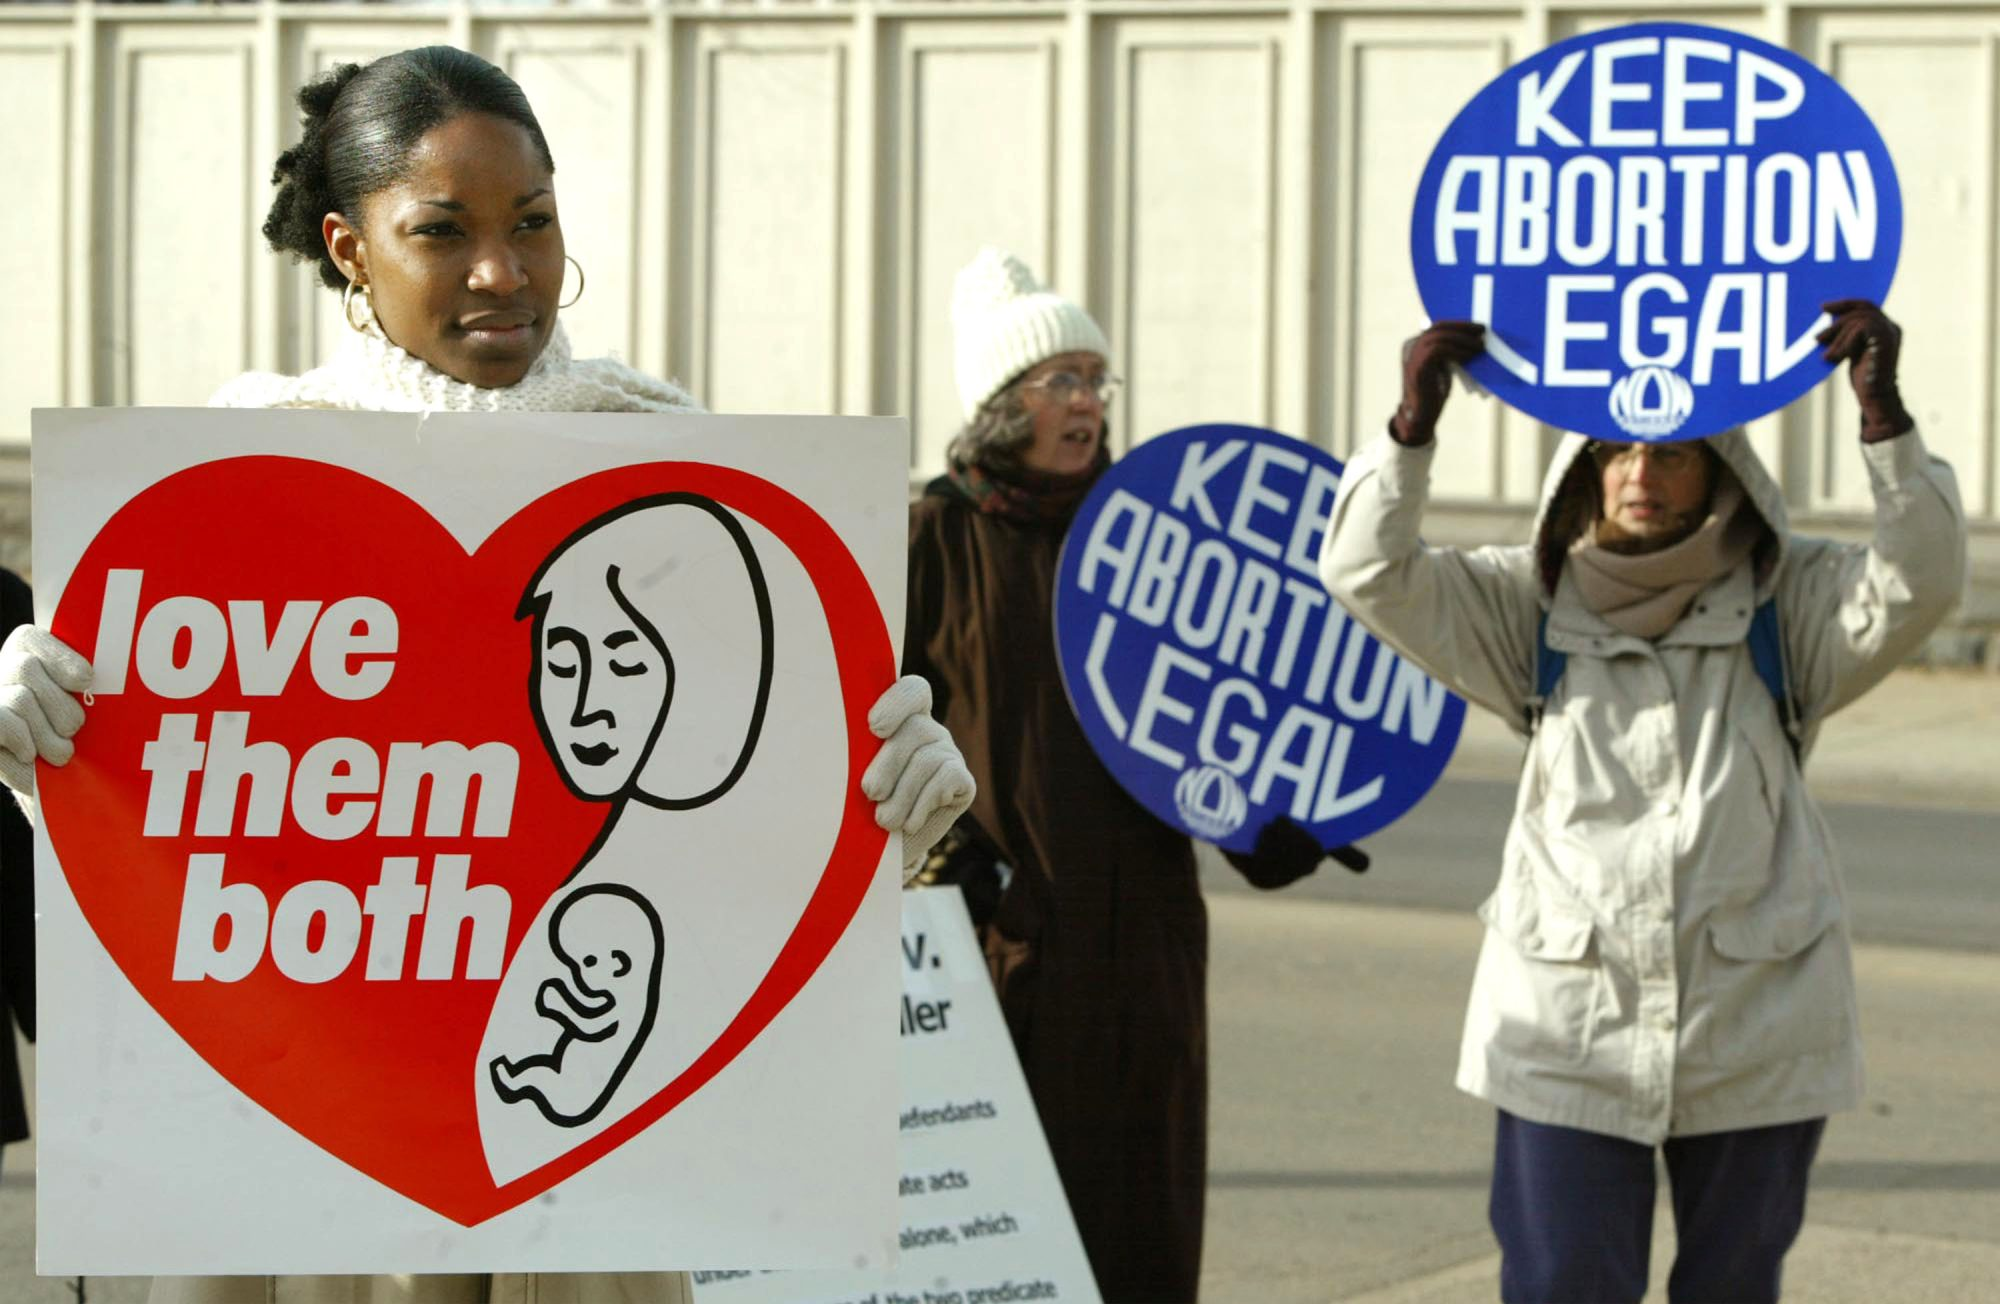 WASHINGTON - DECEMBER 4: Tiffany Keeler (L) holds a sign reading 'Love them both' as people hold 'Keep Abortion Legal' signs during a protest in front of the U.S. Supreme Court December 4, 2002 in Washington, DC. The high court is hearing oral arguments in the Scheidler v. NOW case and is considering whether the RICO act can be used to punish anti-abortion protesters. Operation Rescue, anti-abortion leader Joseph Scheidler and others are appealing a case first dealt with nine years ago to the Supreme Court. The National Organization for Women (NOW) and abortion clinics in Wisconsin and Delaware sued the anti-abortion groups for 'violent tactics.' (Photo by Mark Wilson/Getty Images)